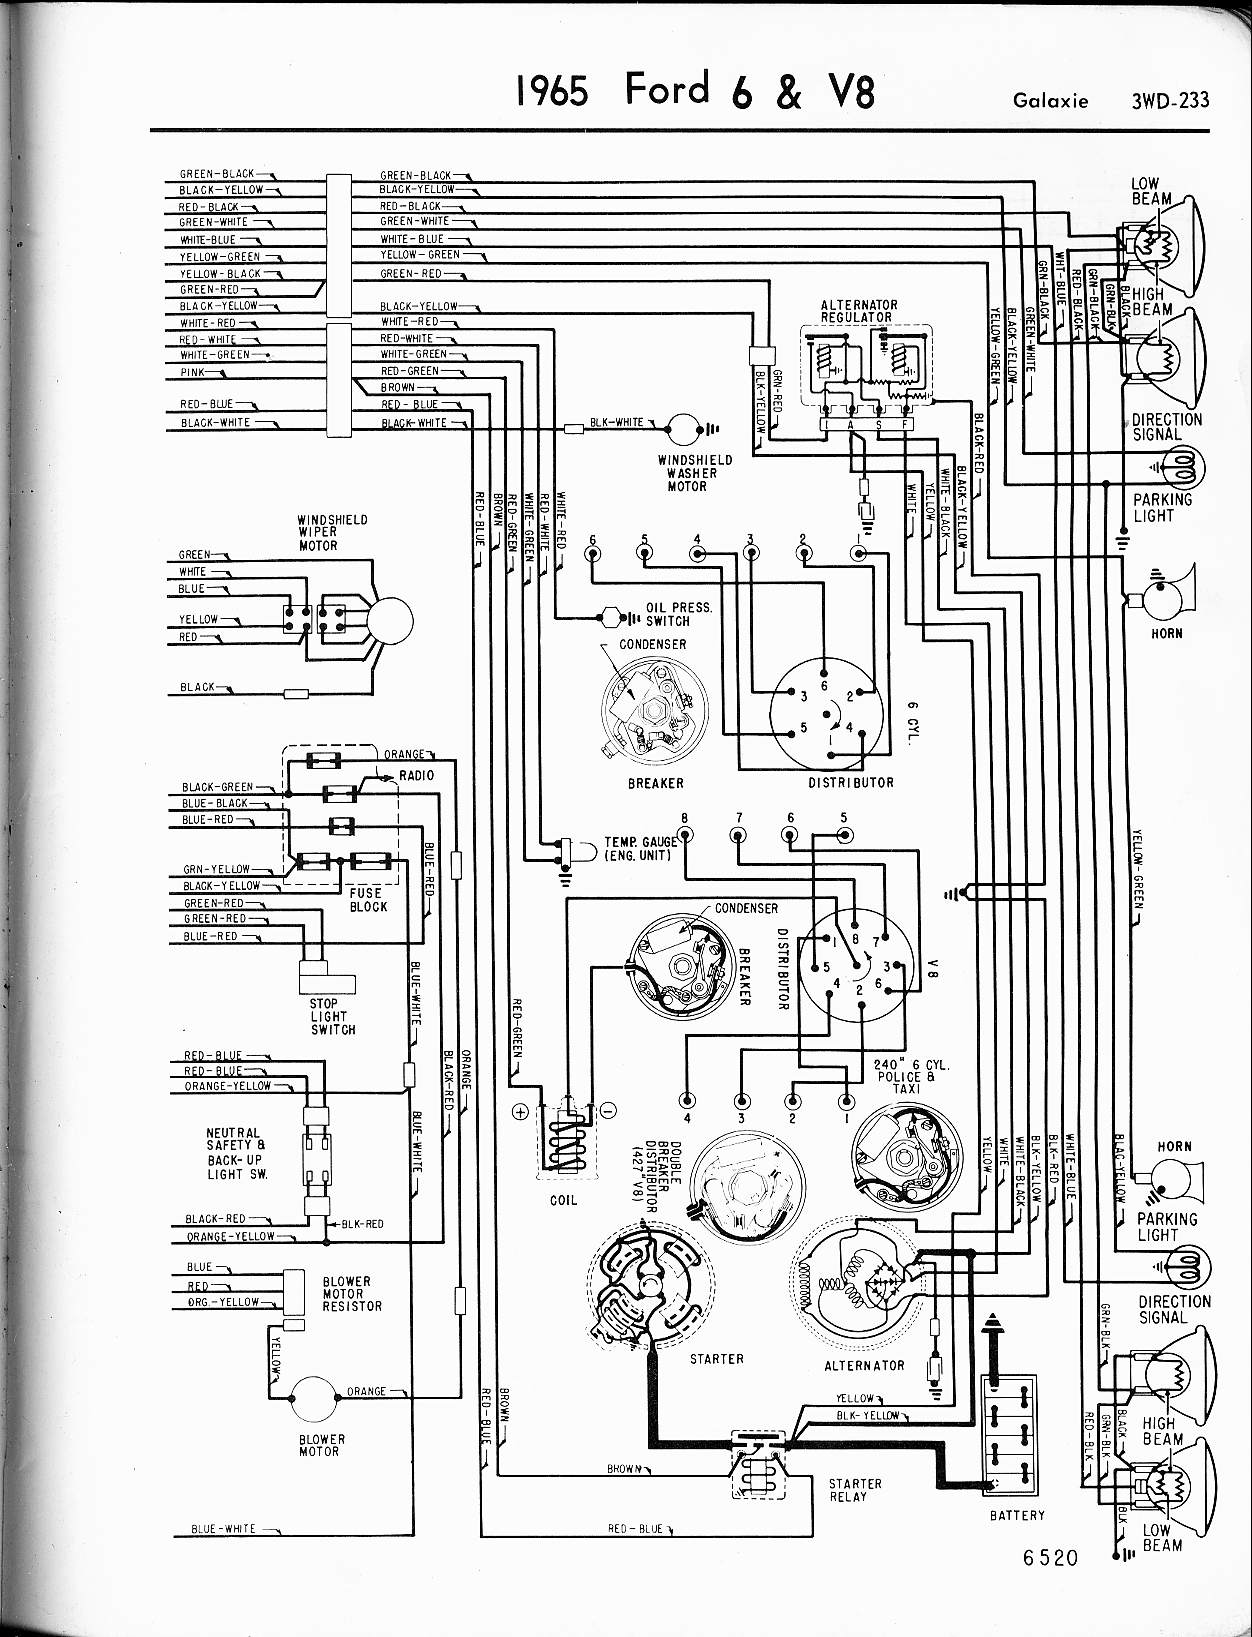 ford transit wiring diagram pdf starting system amp wiring diagram